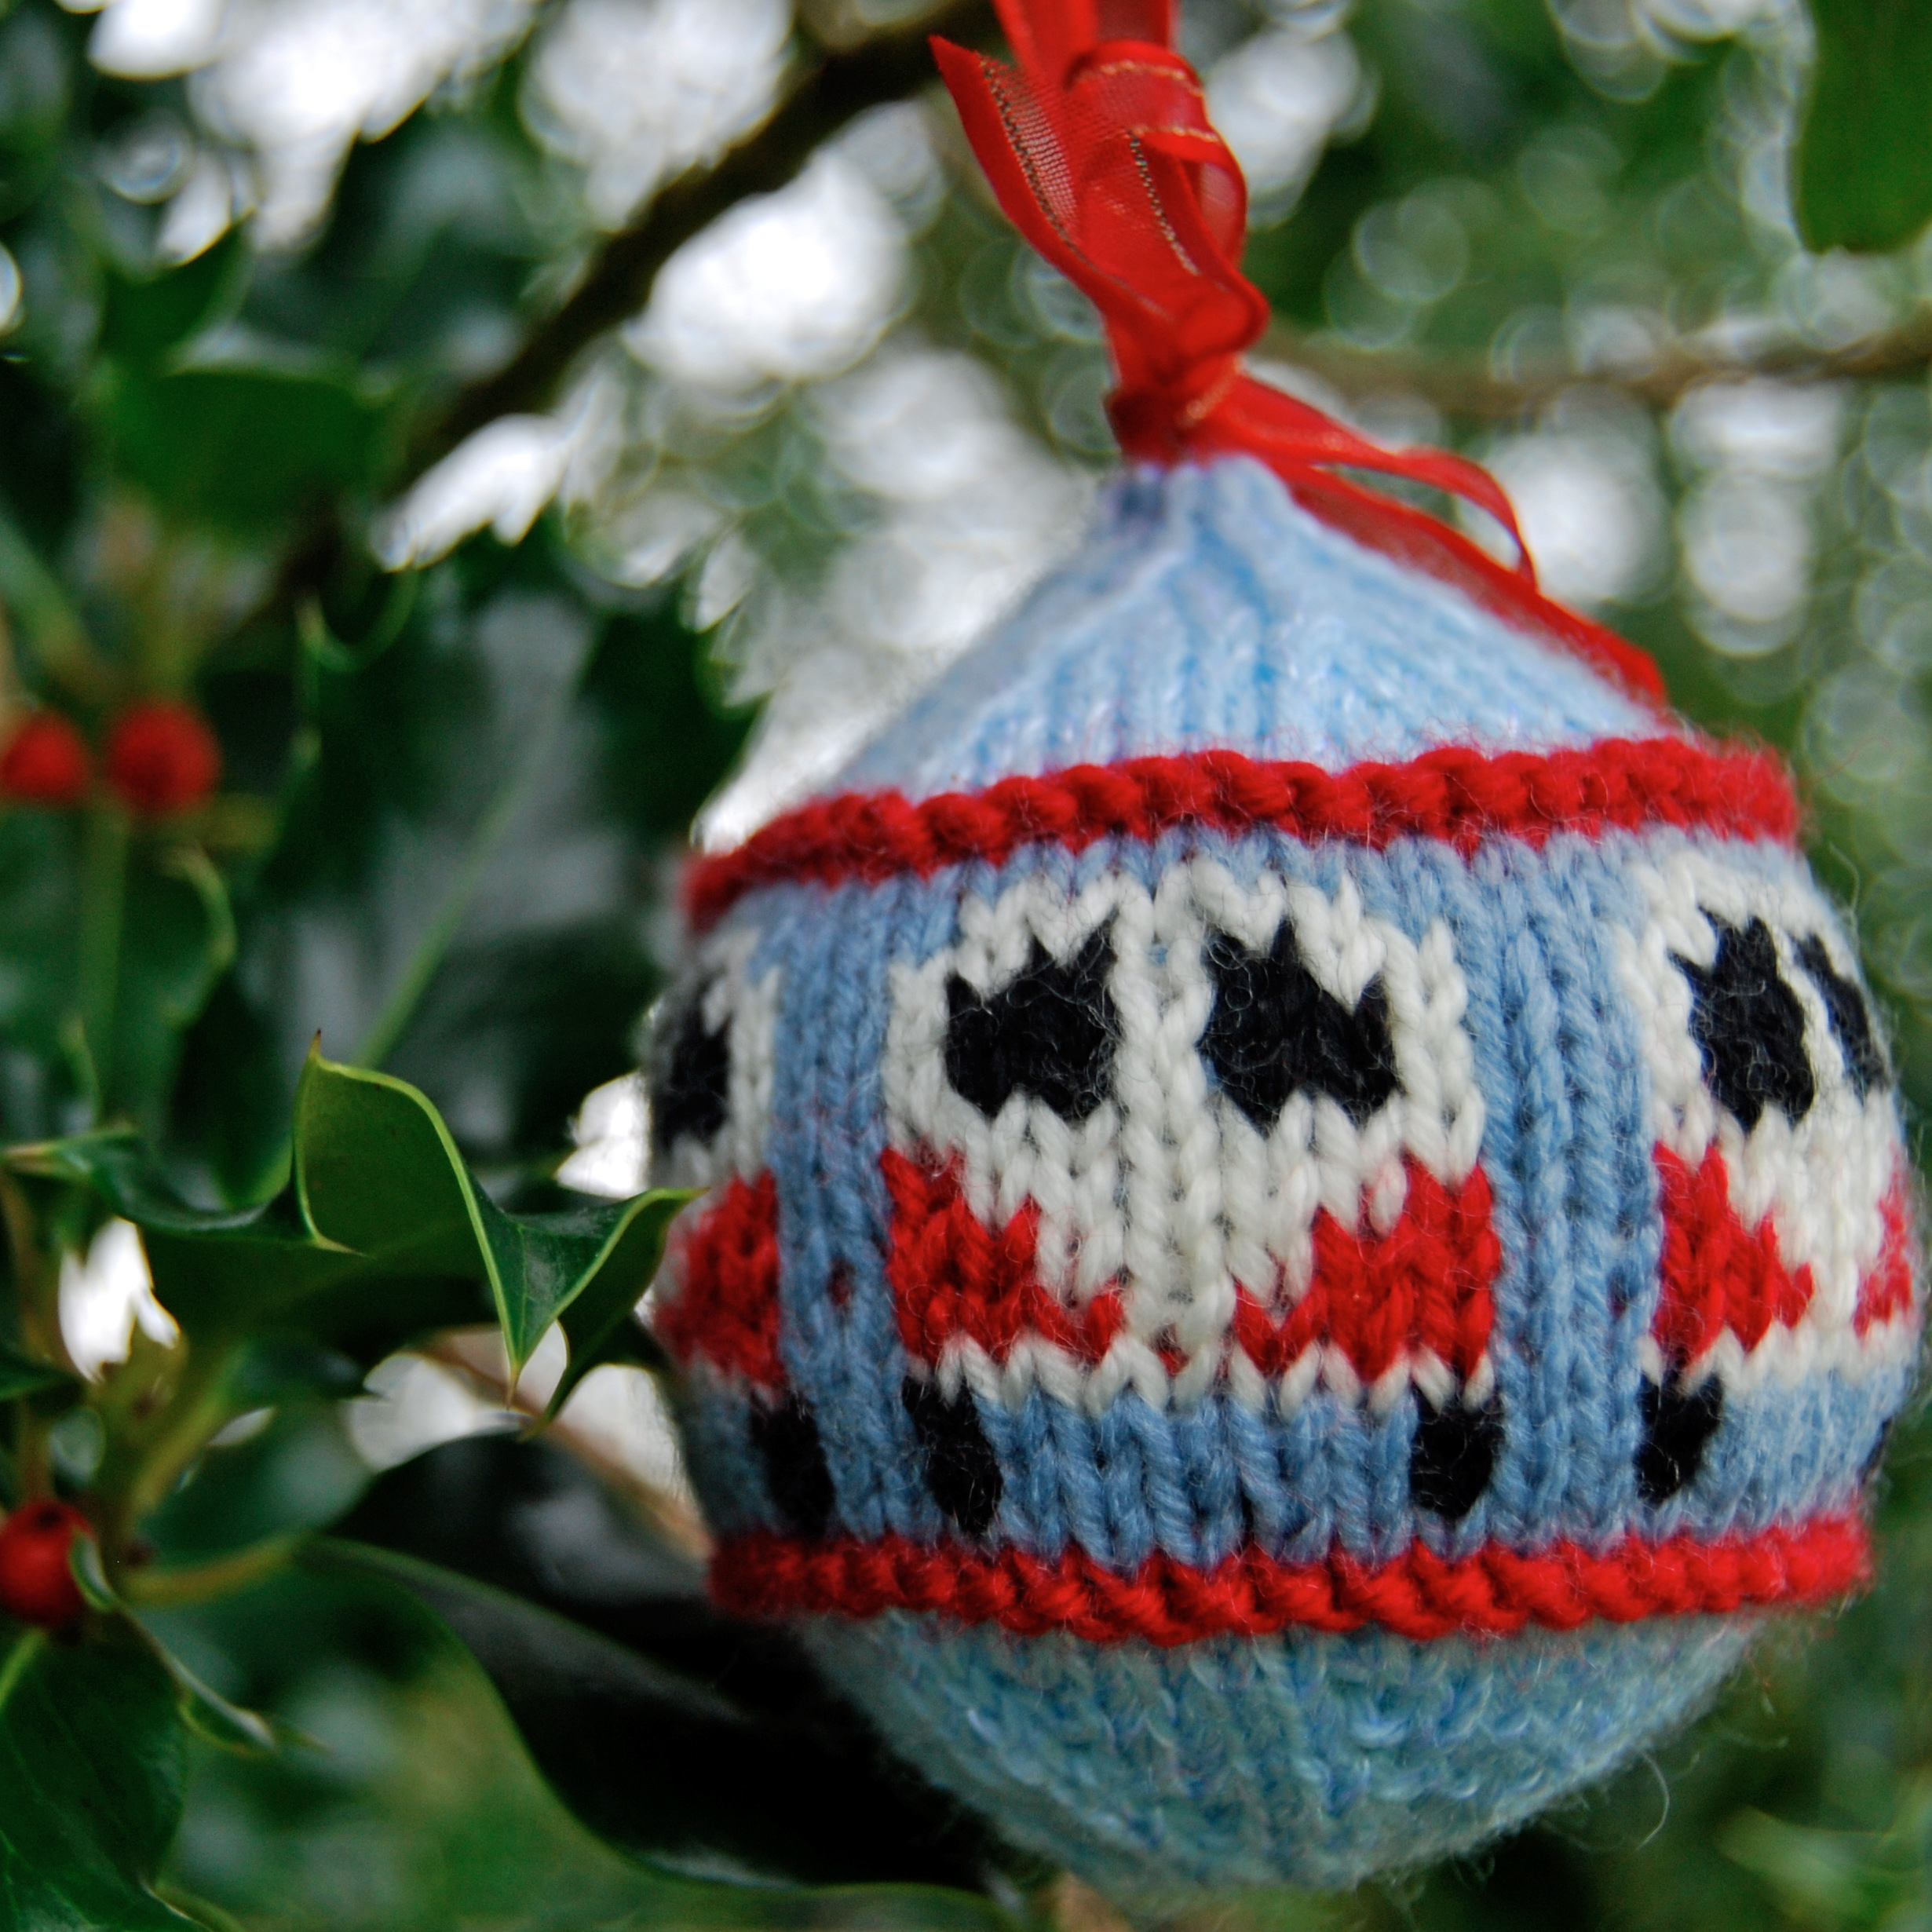 A Campervan themed festive bauble decoration for your Christmas tree